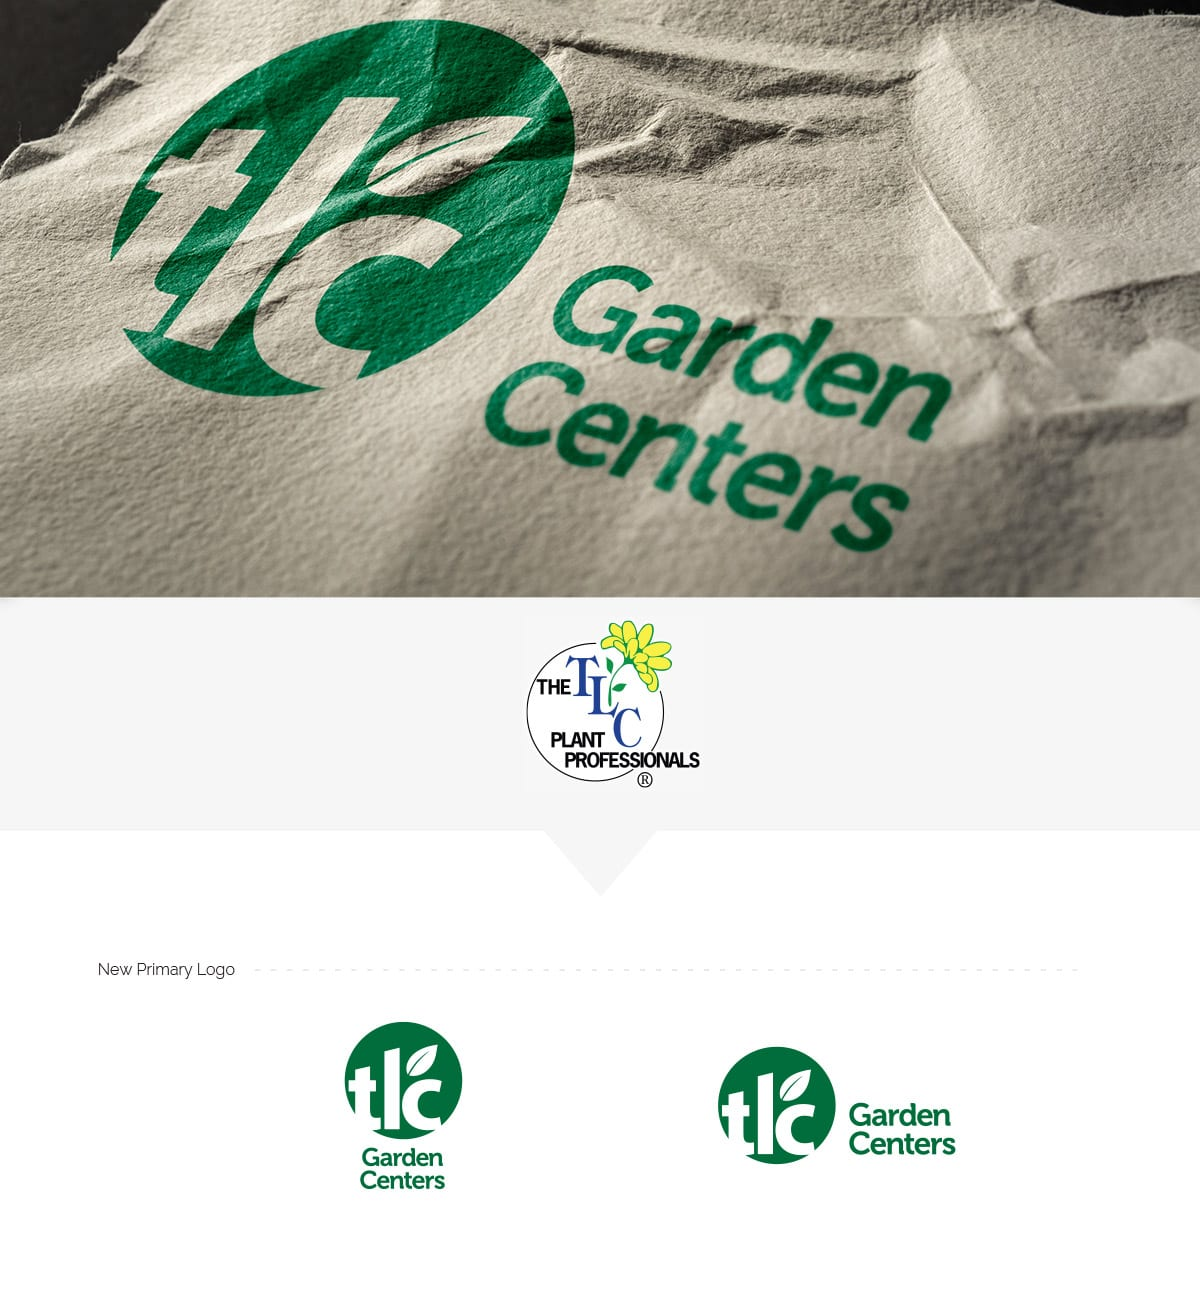 TLC Garden Centers Logo Design by Liquid Media